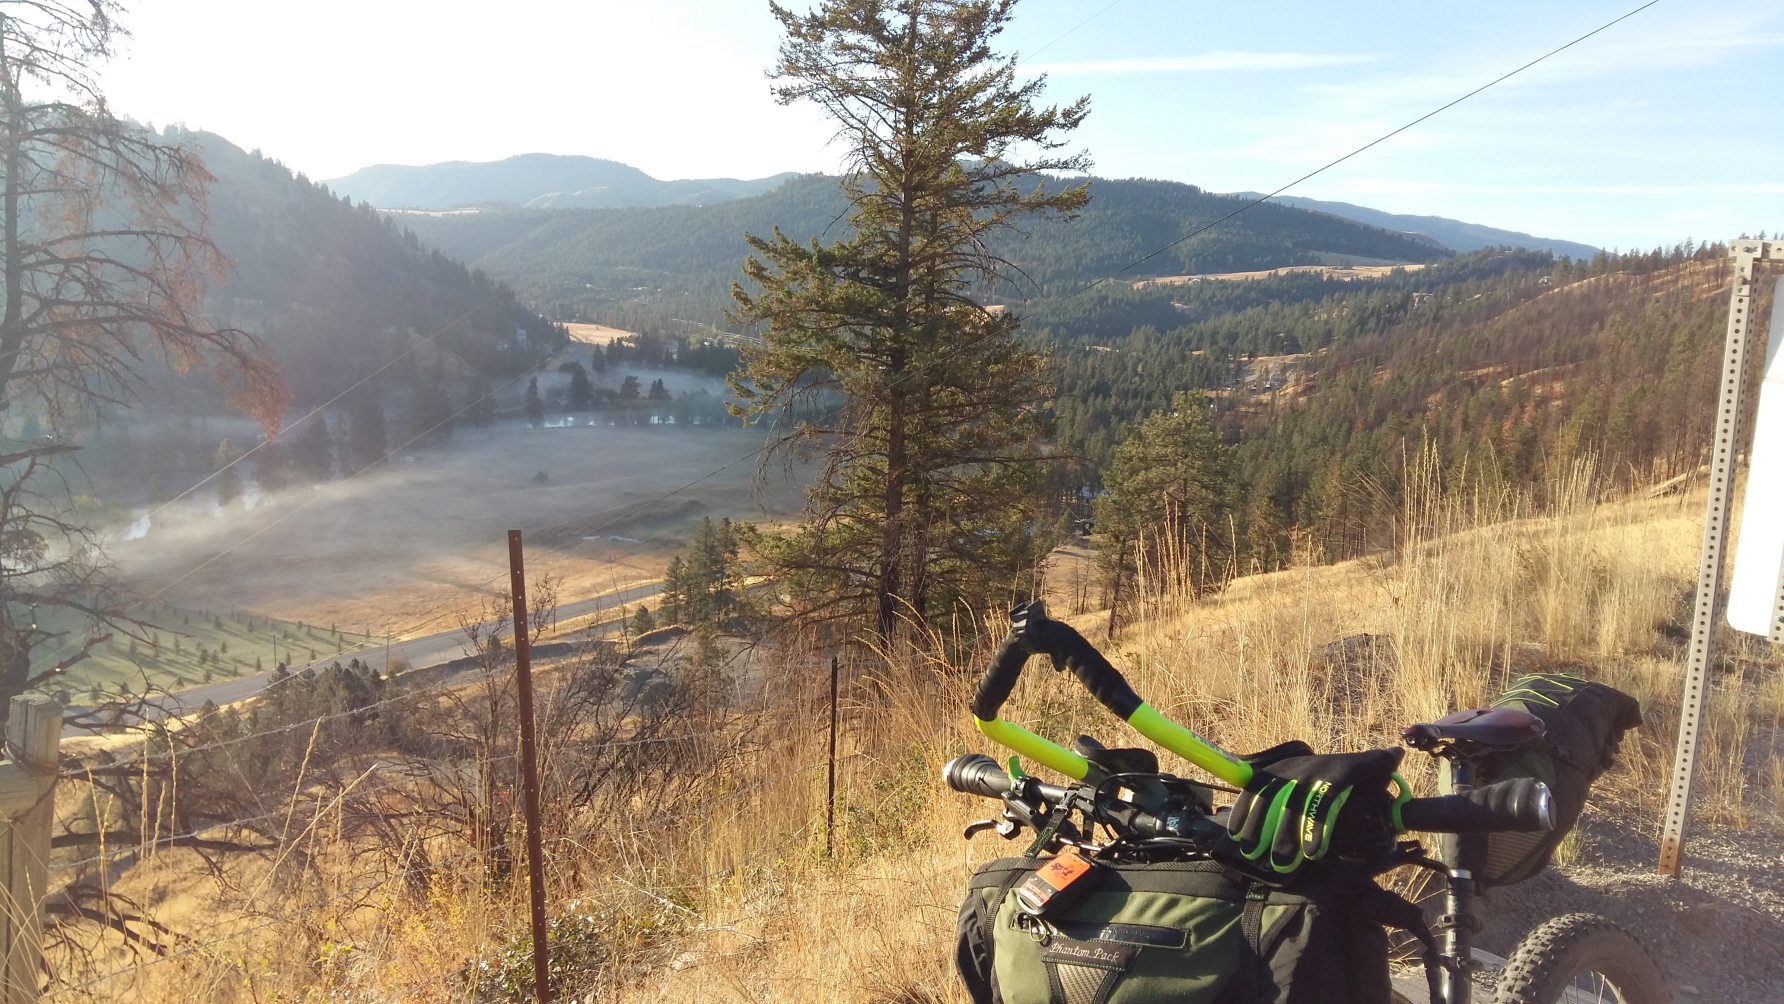 Looking down on Rock Creek and Kettle Valley from Hwy #3